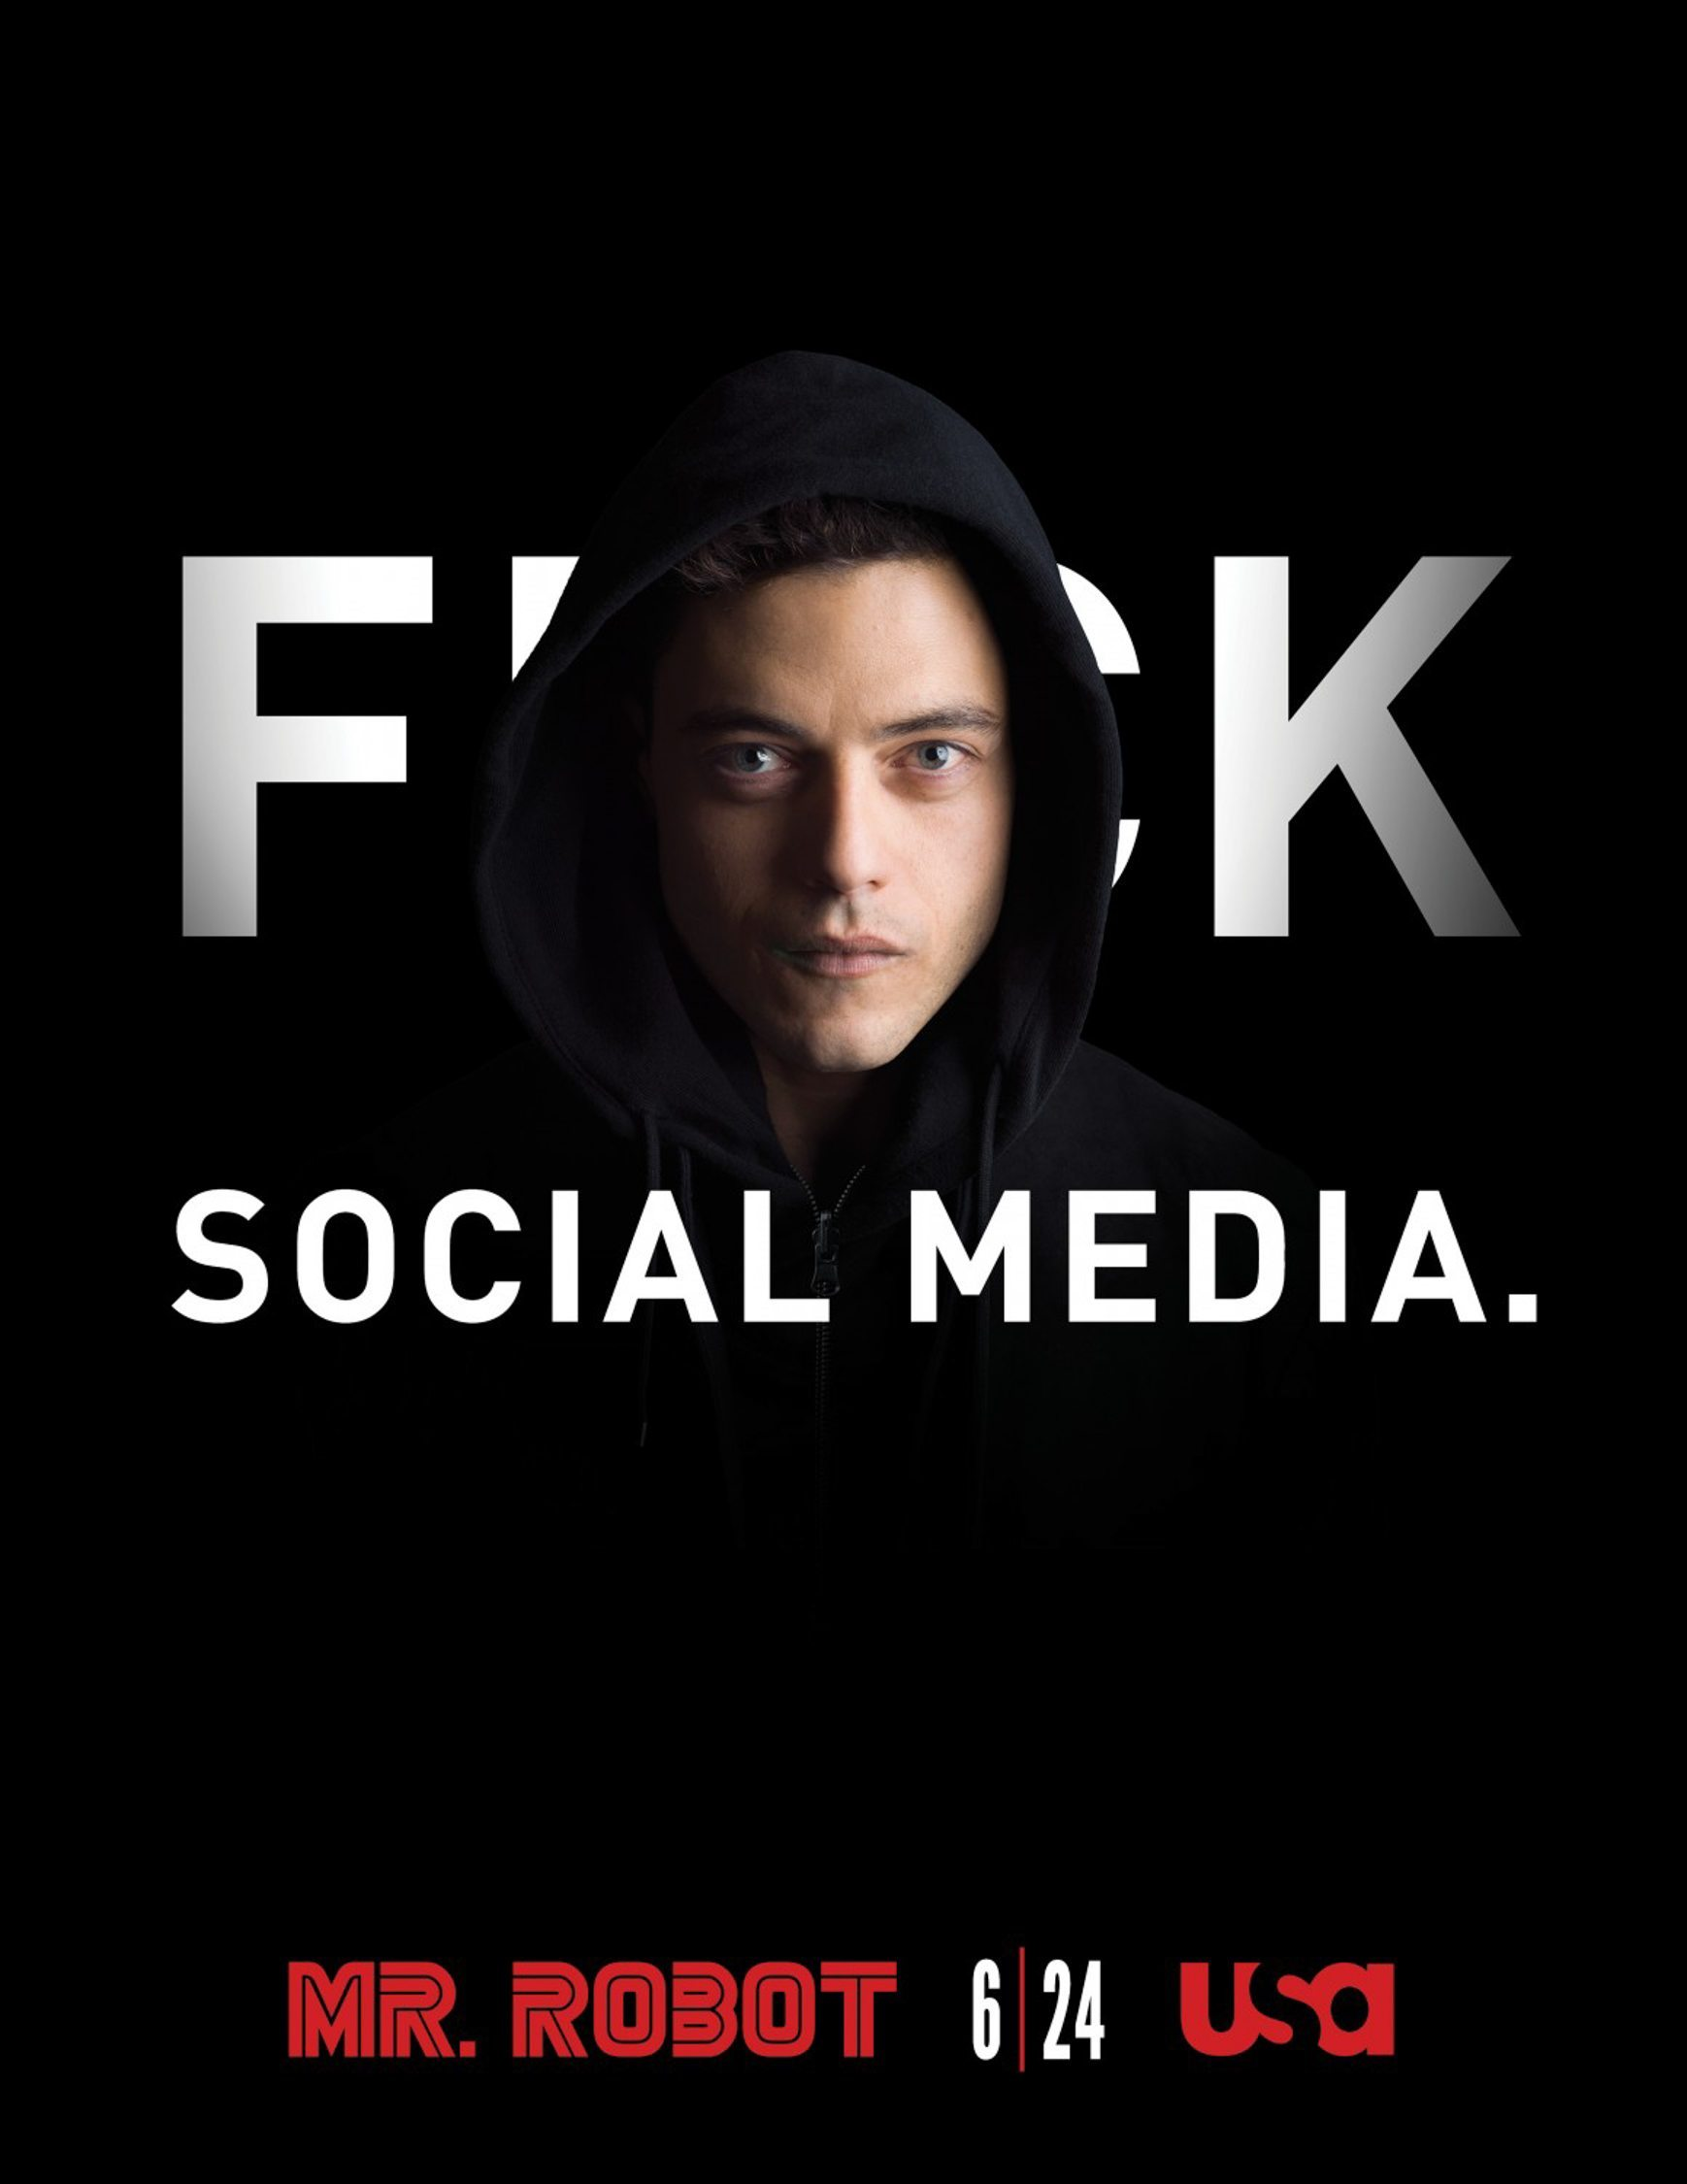 Mr. Robot (1159 x 1500) VoicesFILM.com-2